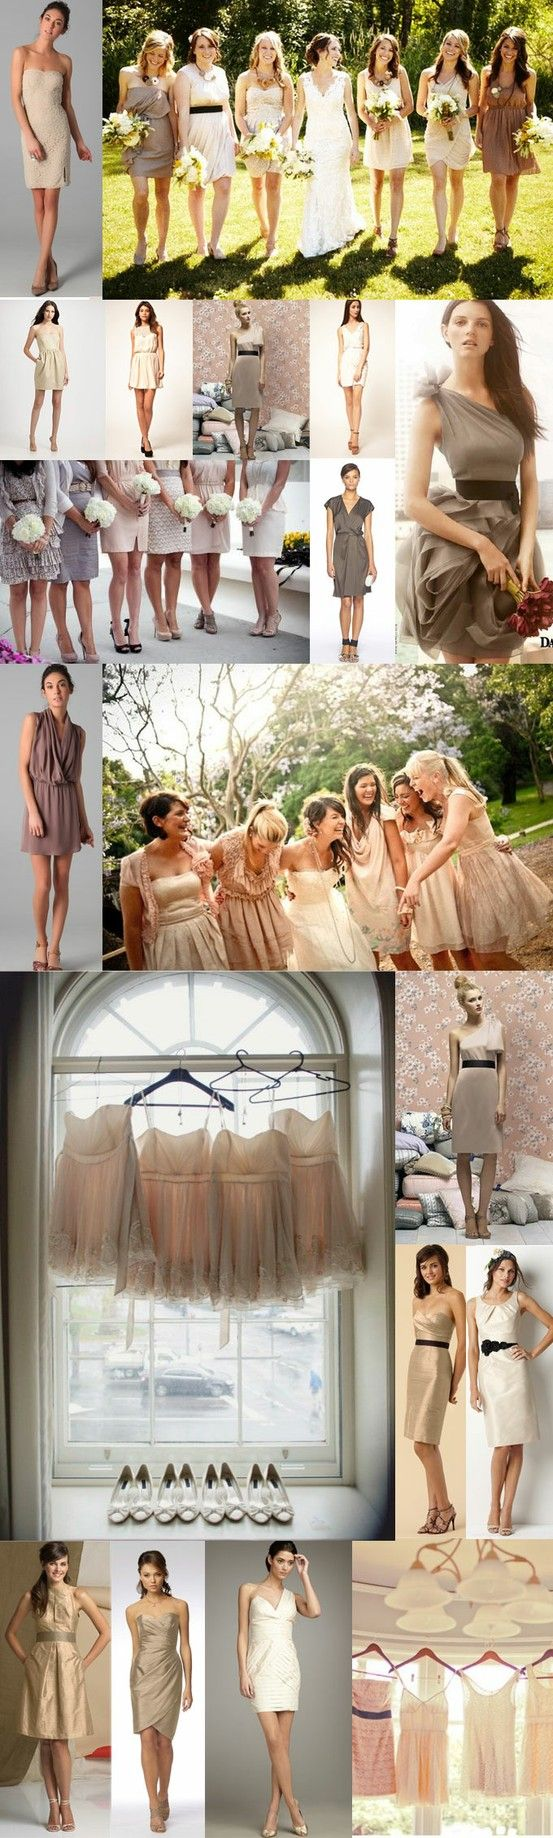 I go back n forth on whether I want mixed matched dresses for my bridesmaids or if I want them all to match... future thinking girl problems!